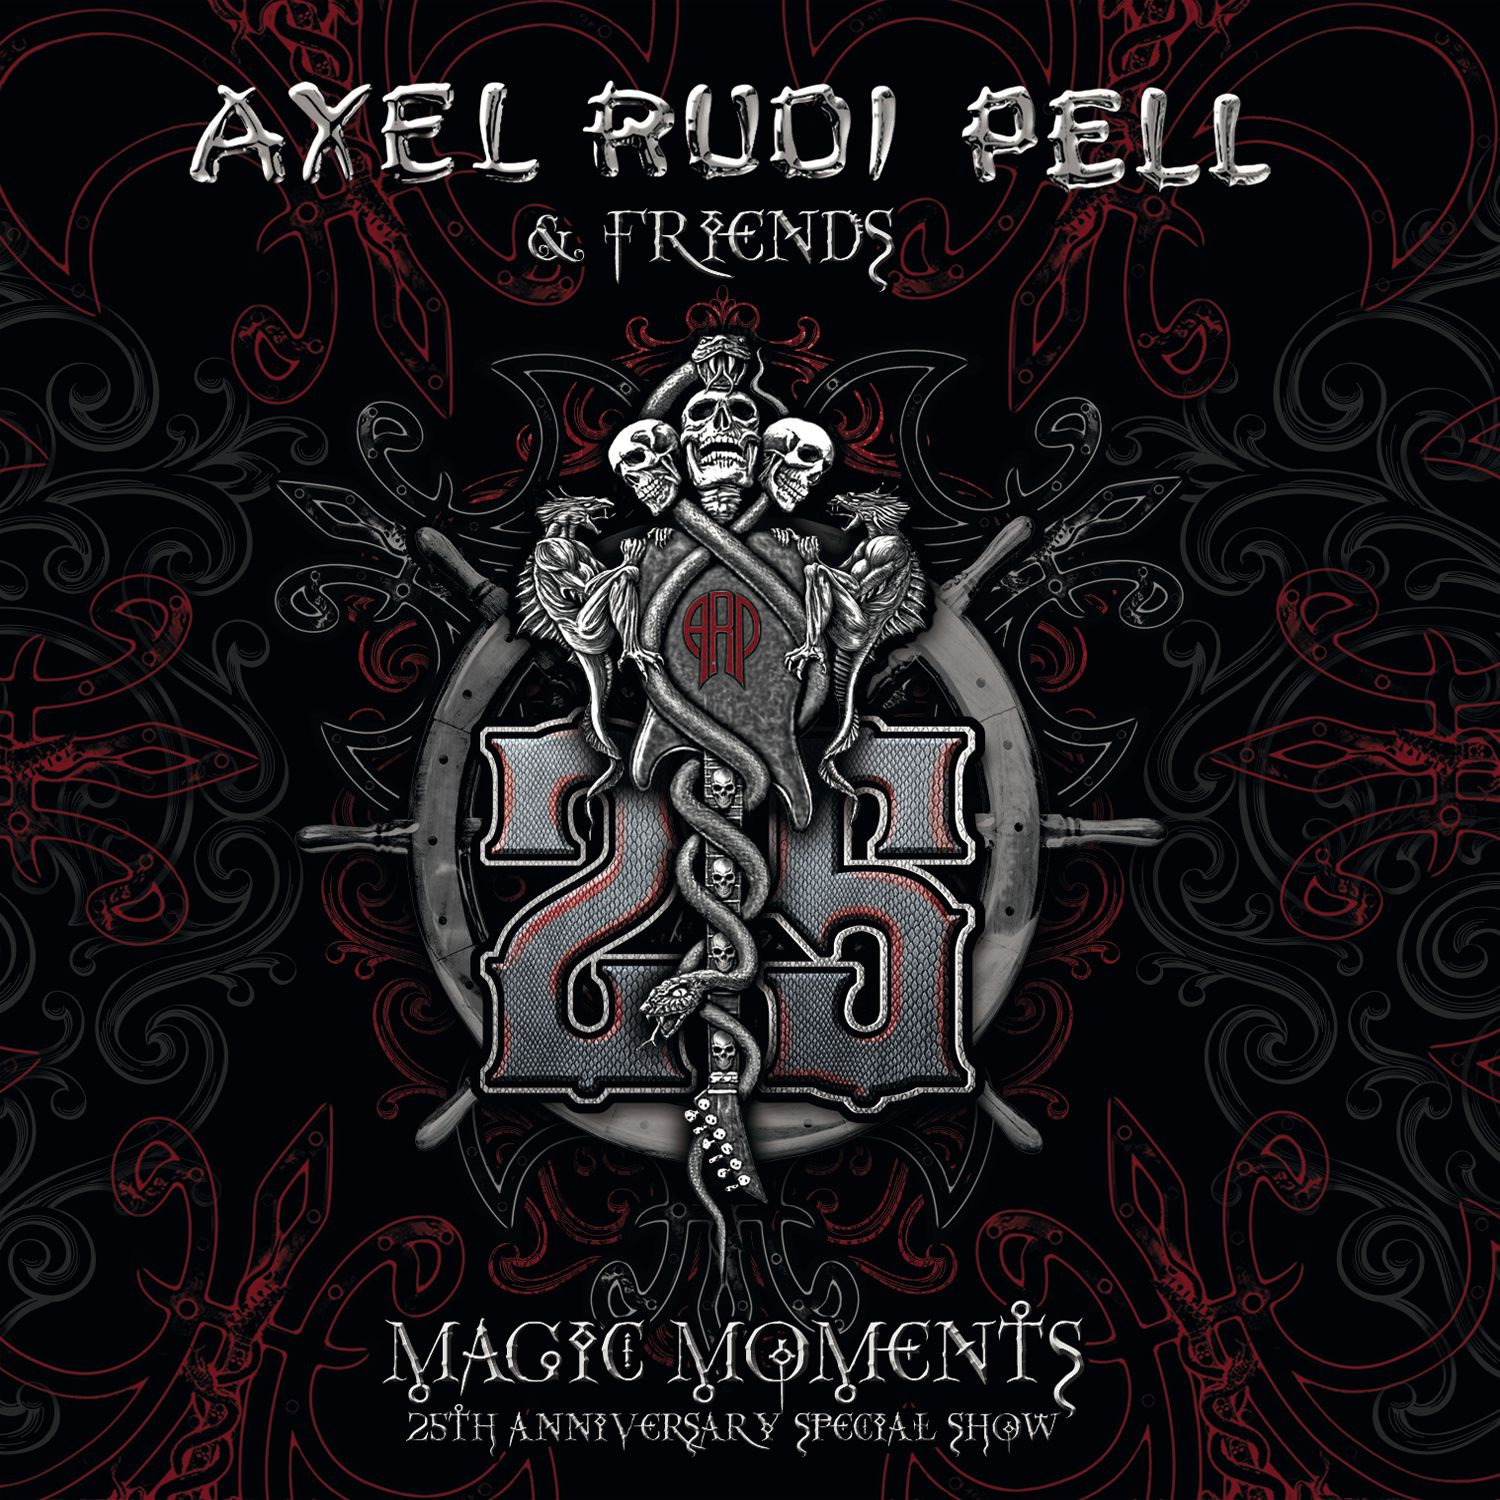 """CD review AXEL RUDI PELL """"Magic moments - 25 anniversary special show"""""""